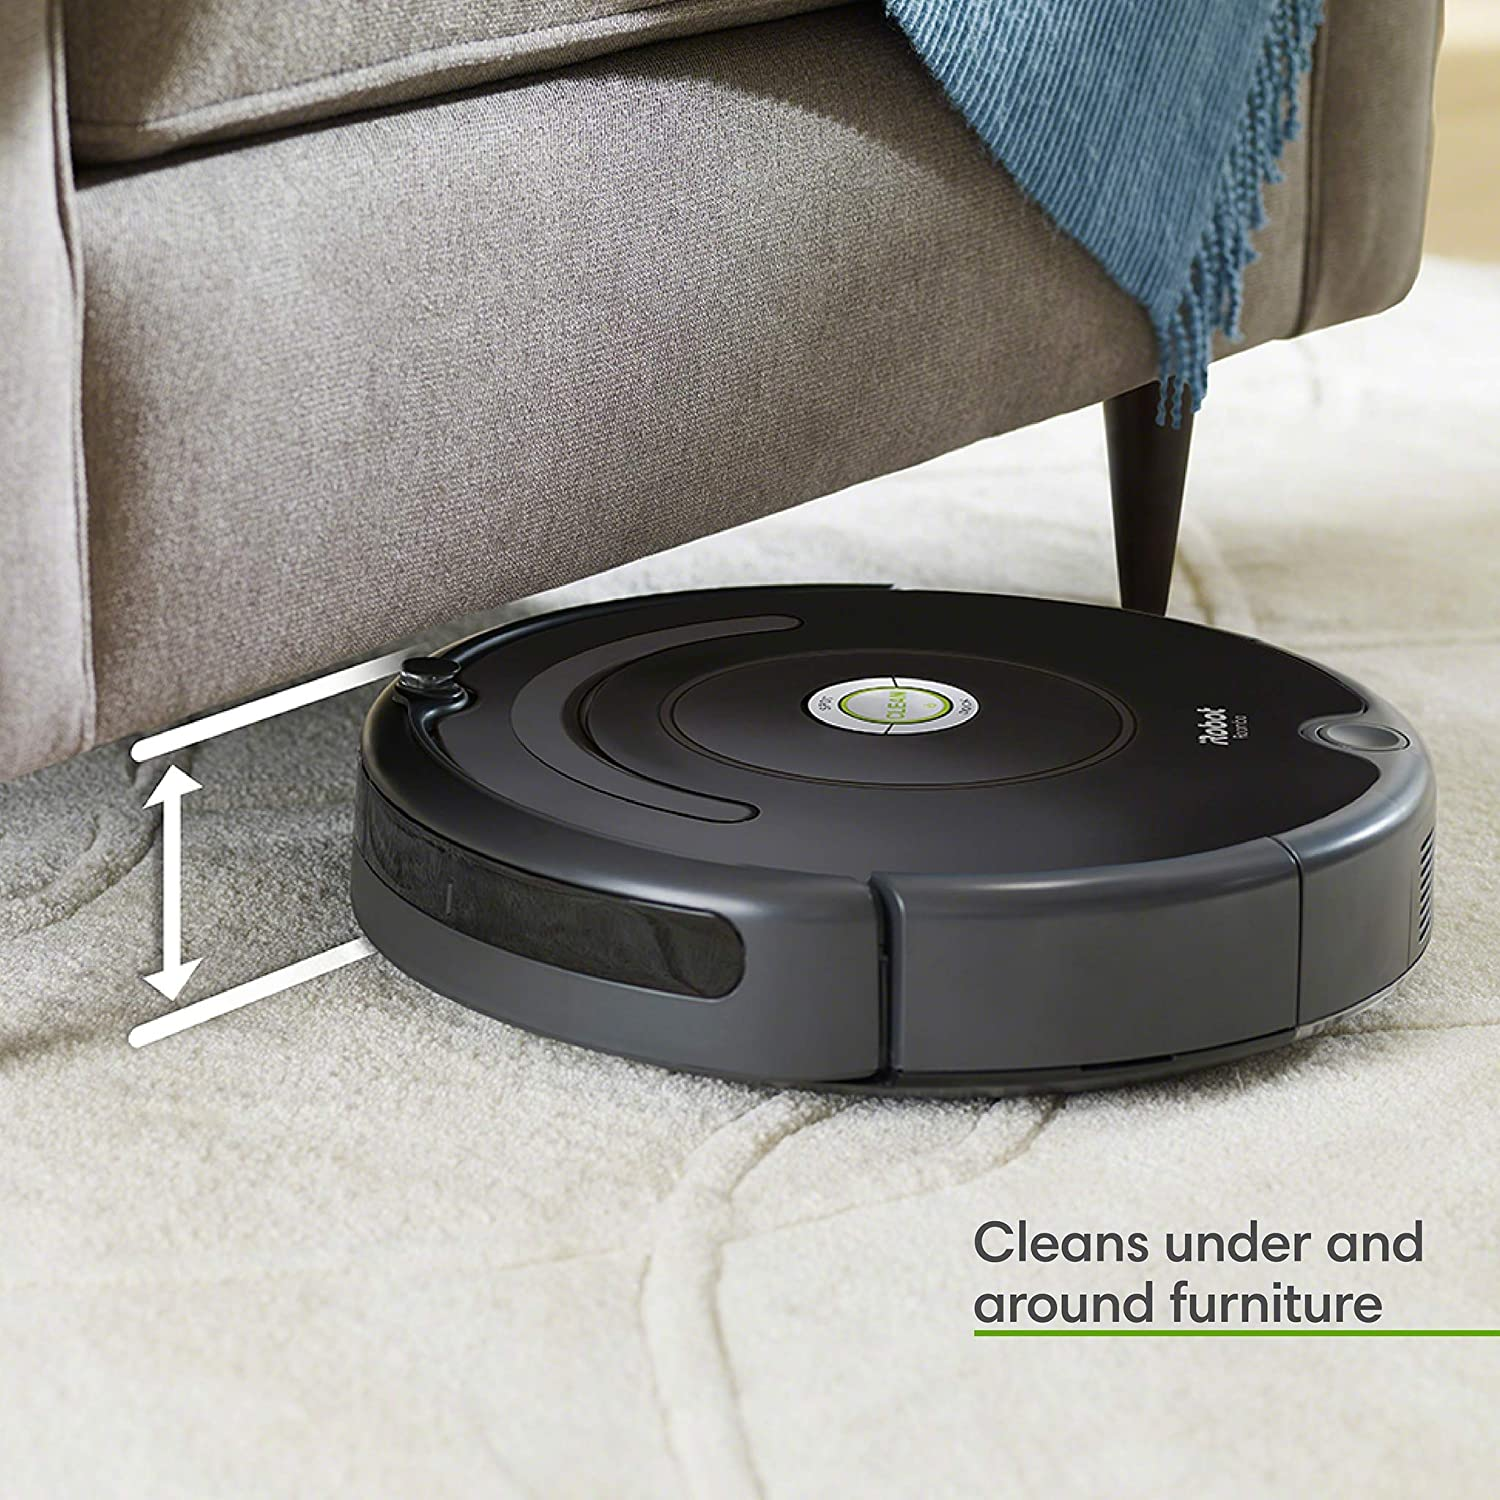 Best Robotic Vacuum for Pet Hair in 2020: Reviews & Buying Guide 17